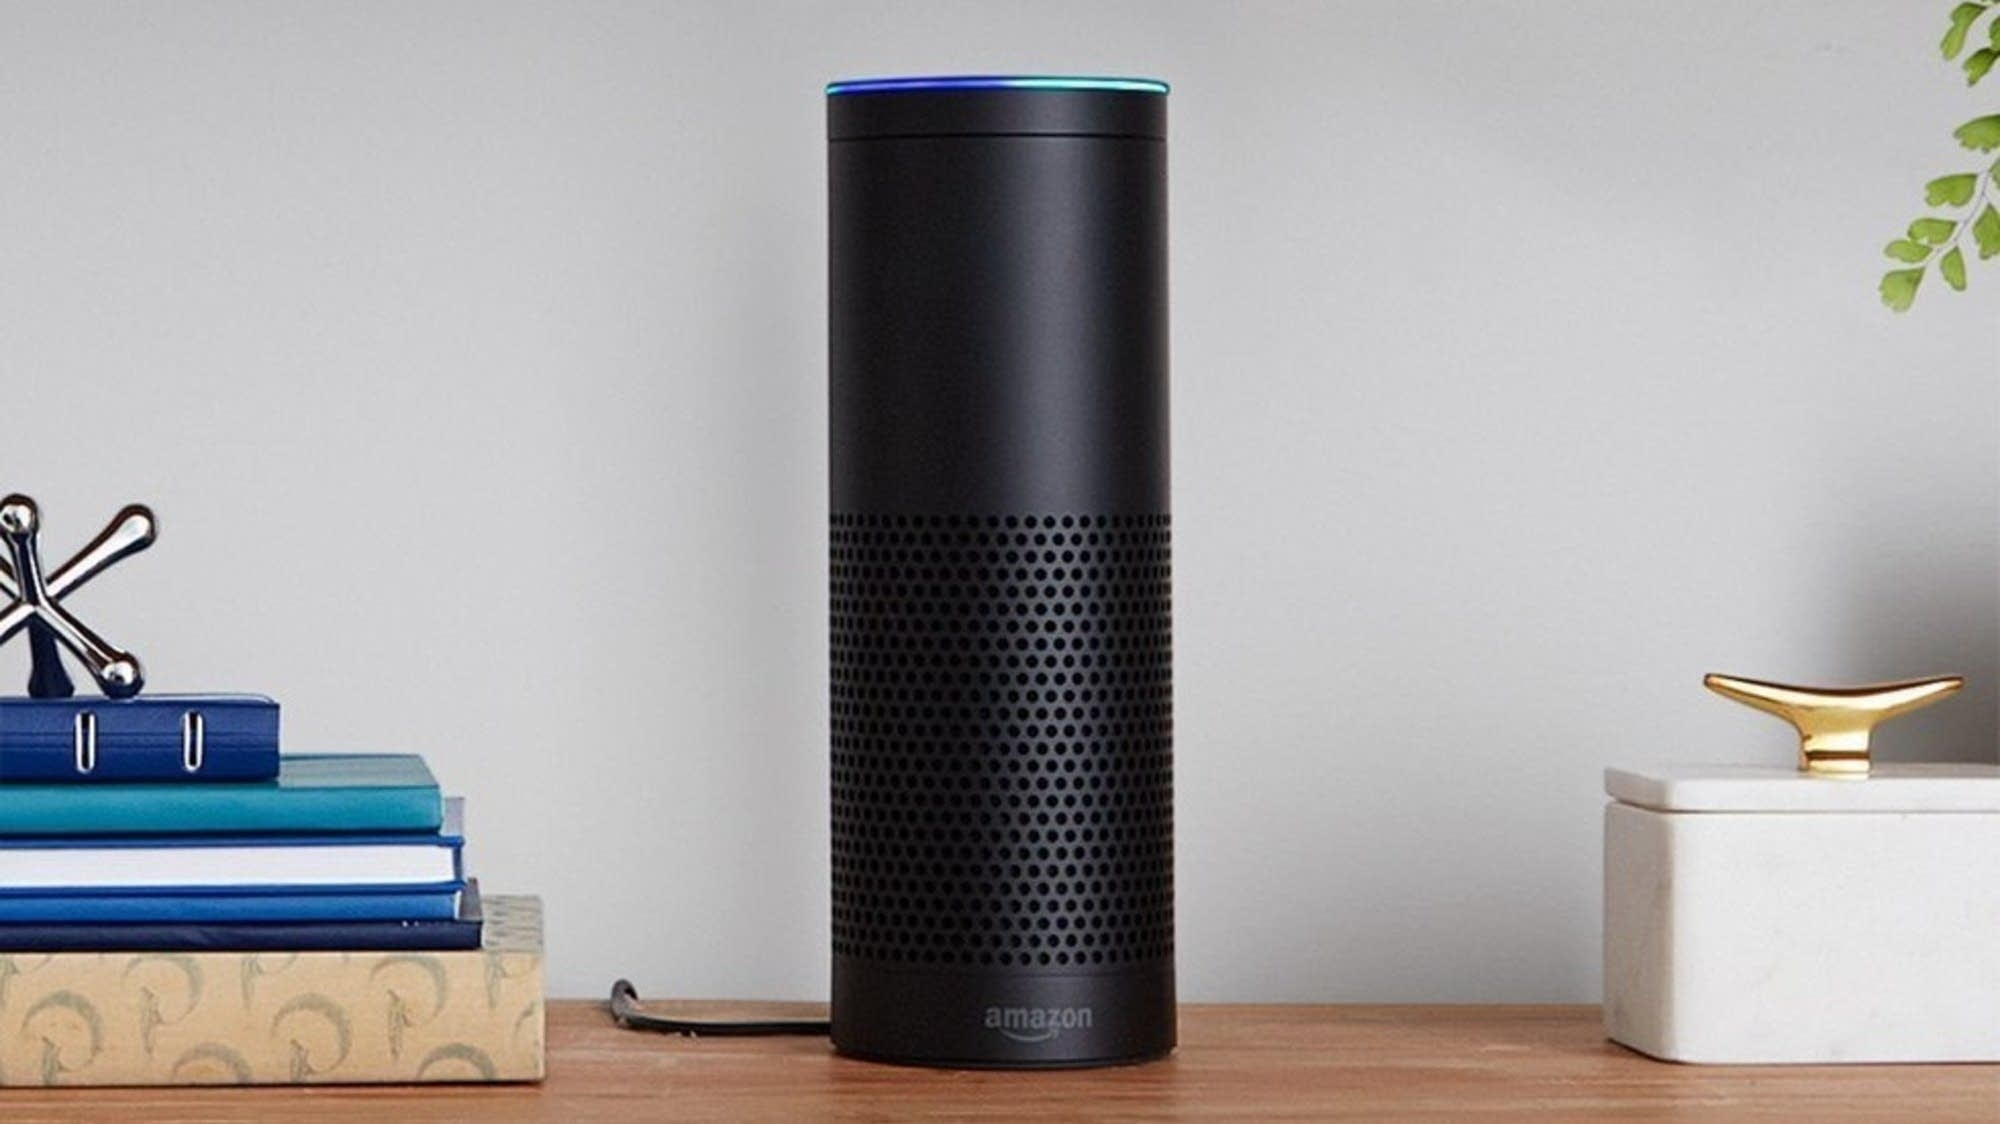 Listen to Classical MPR on Amazon Echo and Google Home, and